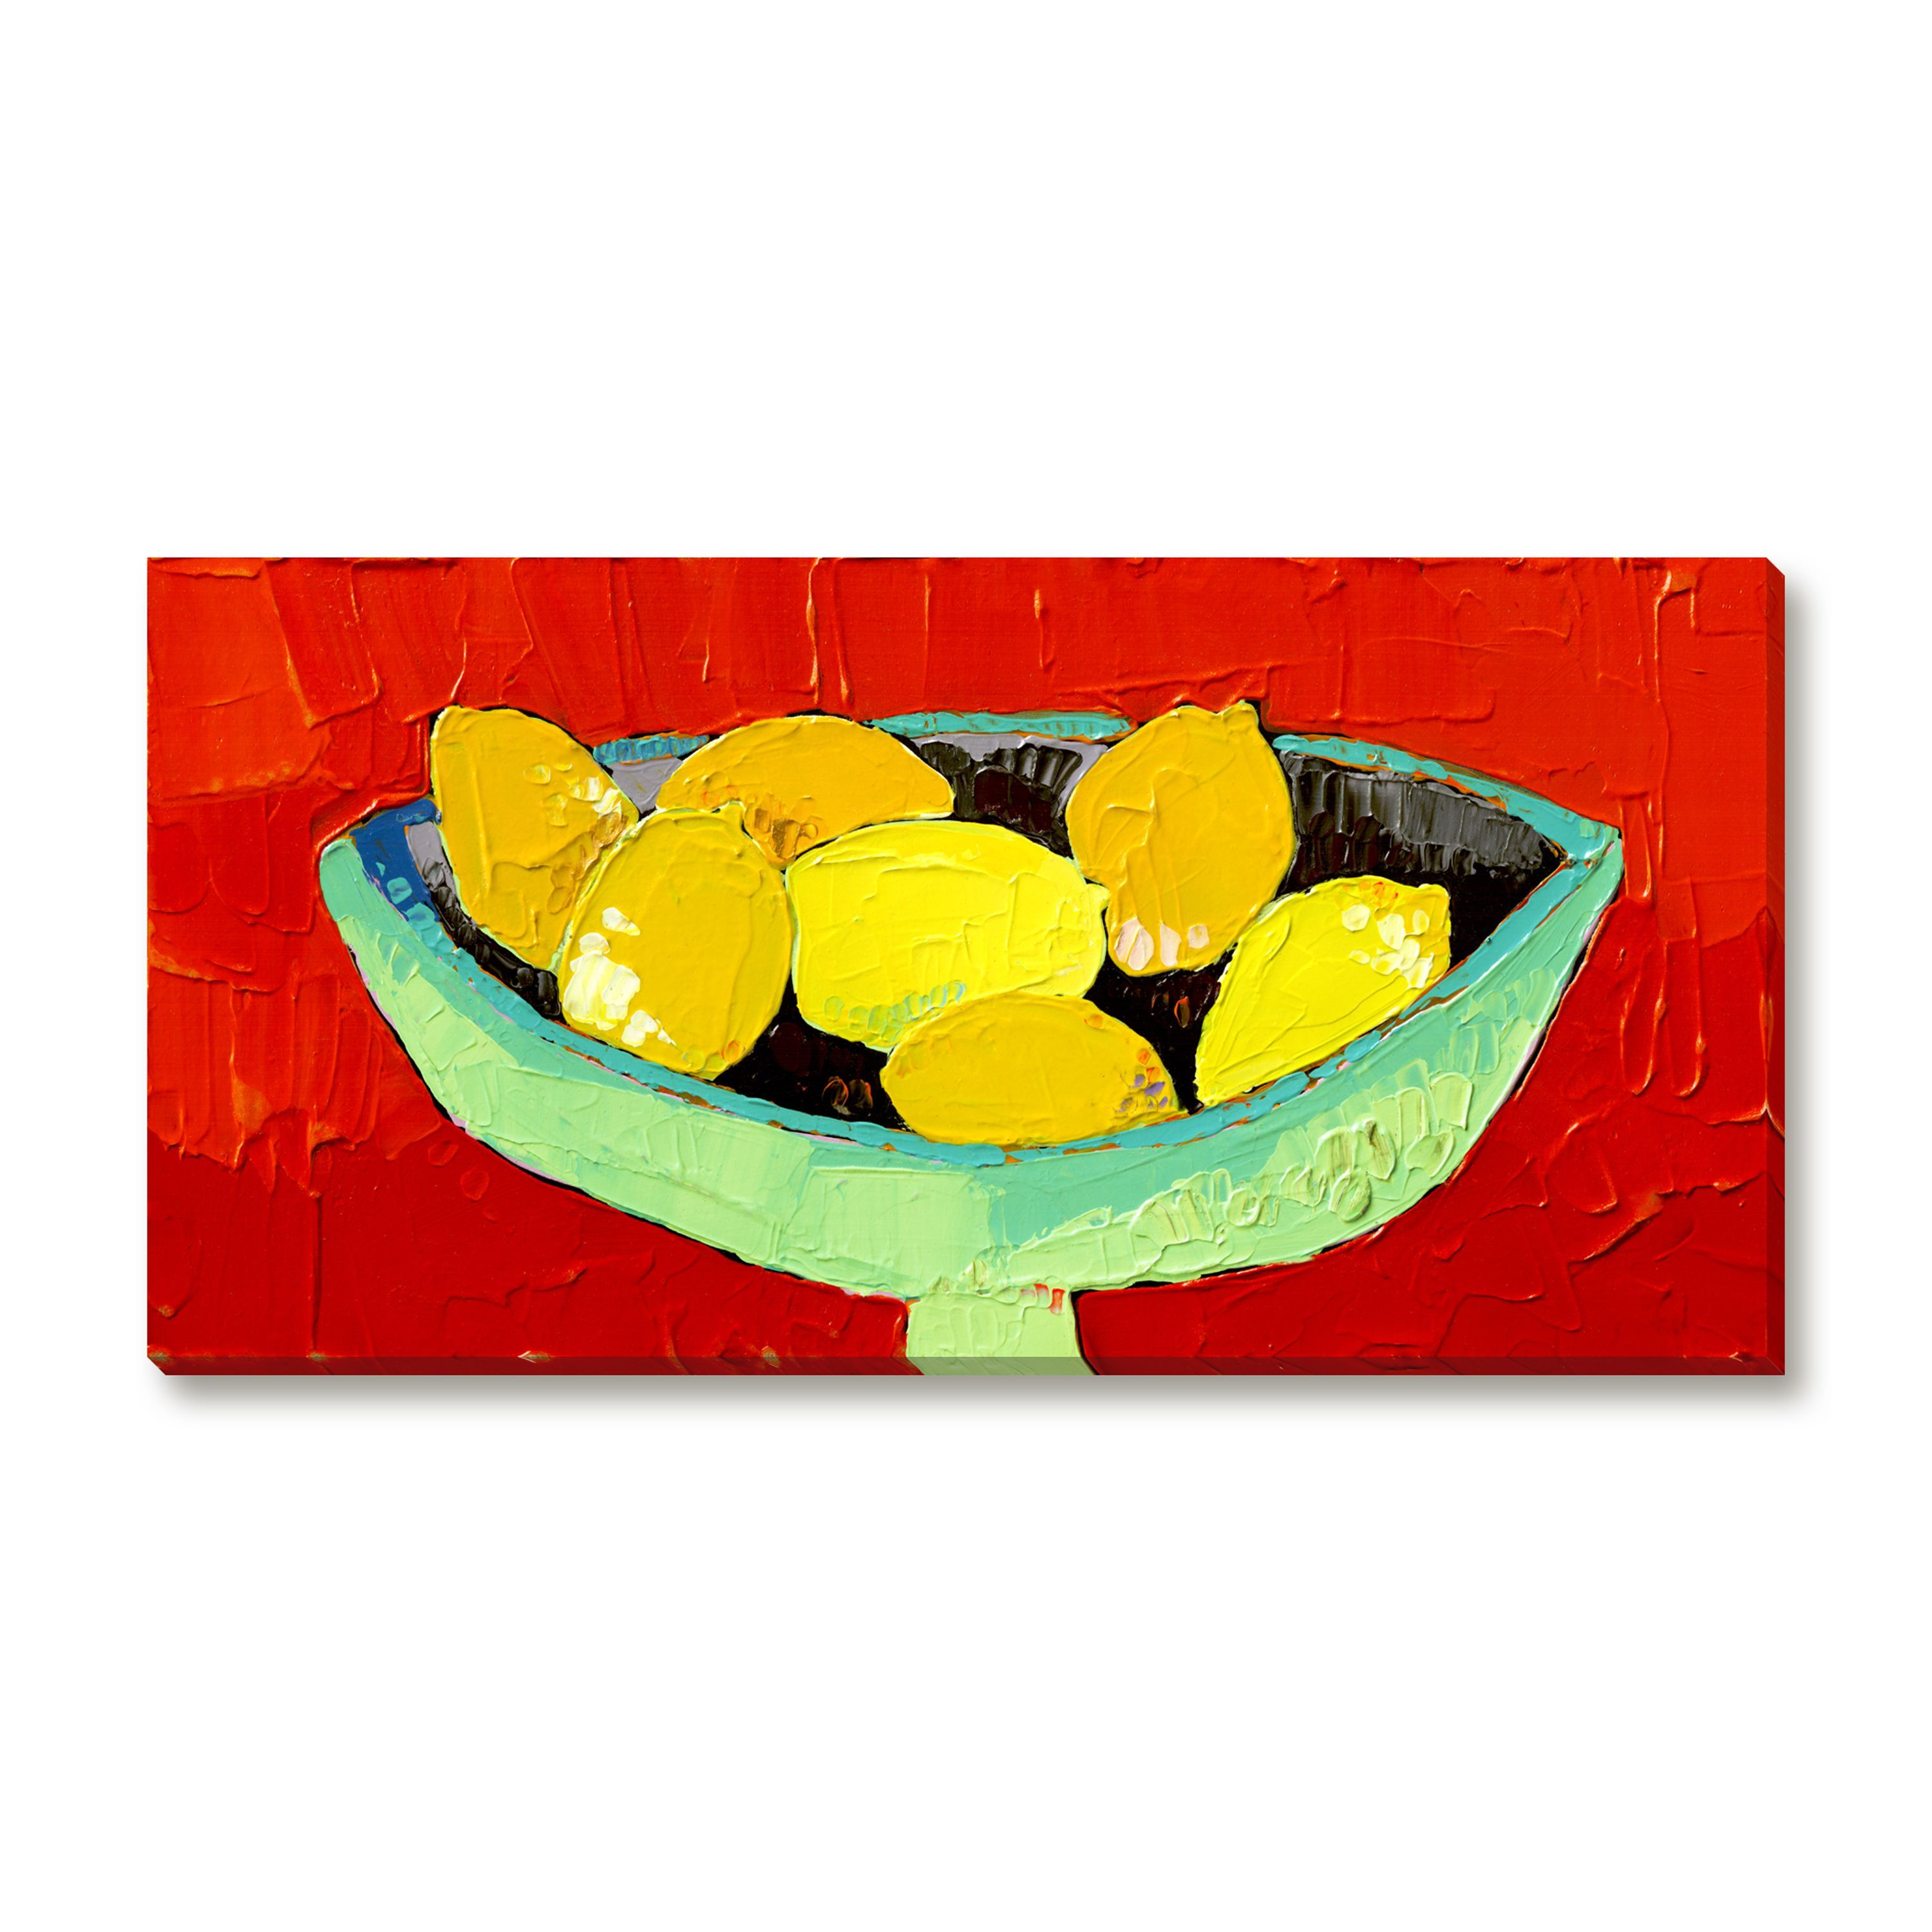 Gallery Direct Trevor Mikula's 'Bowl of Lemons' Gallery Wrapped Canvas